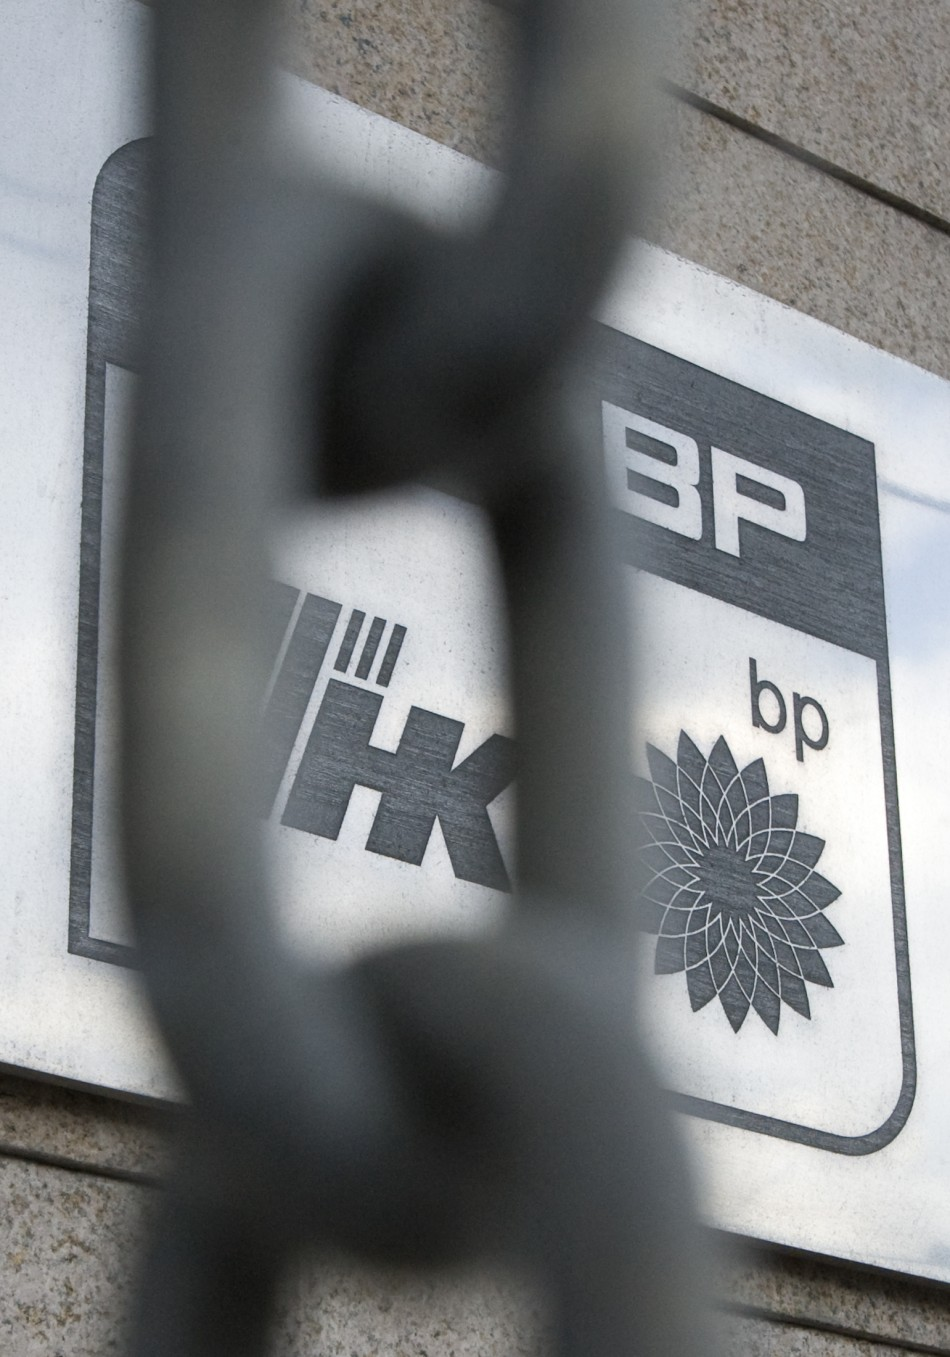 BP to snap up slice of Rosneft on TNK-BP deal? (Photo: Reuters)